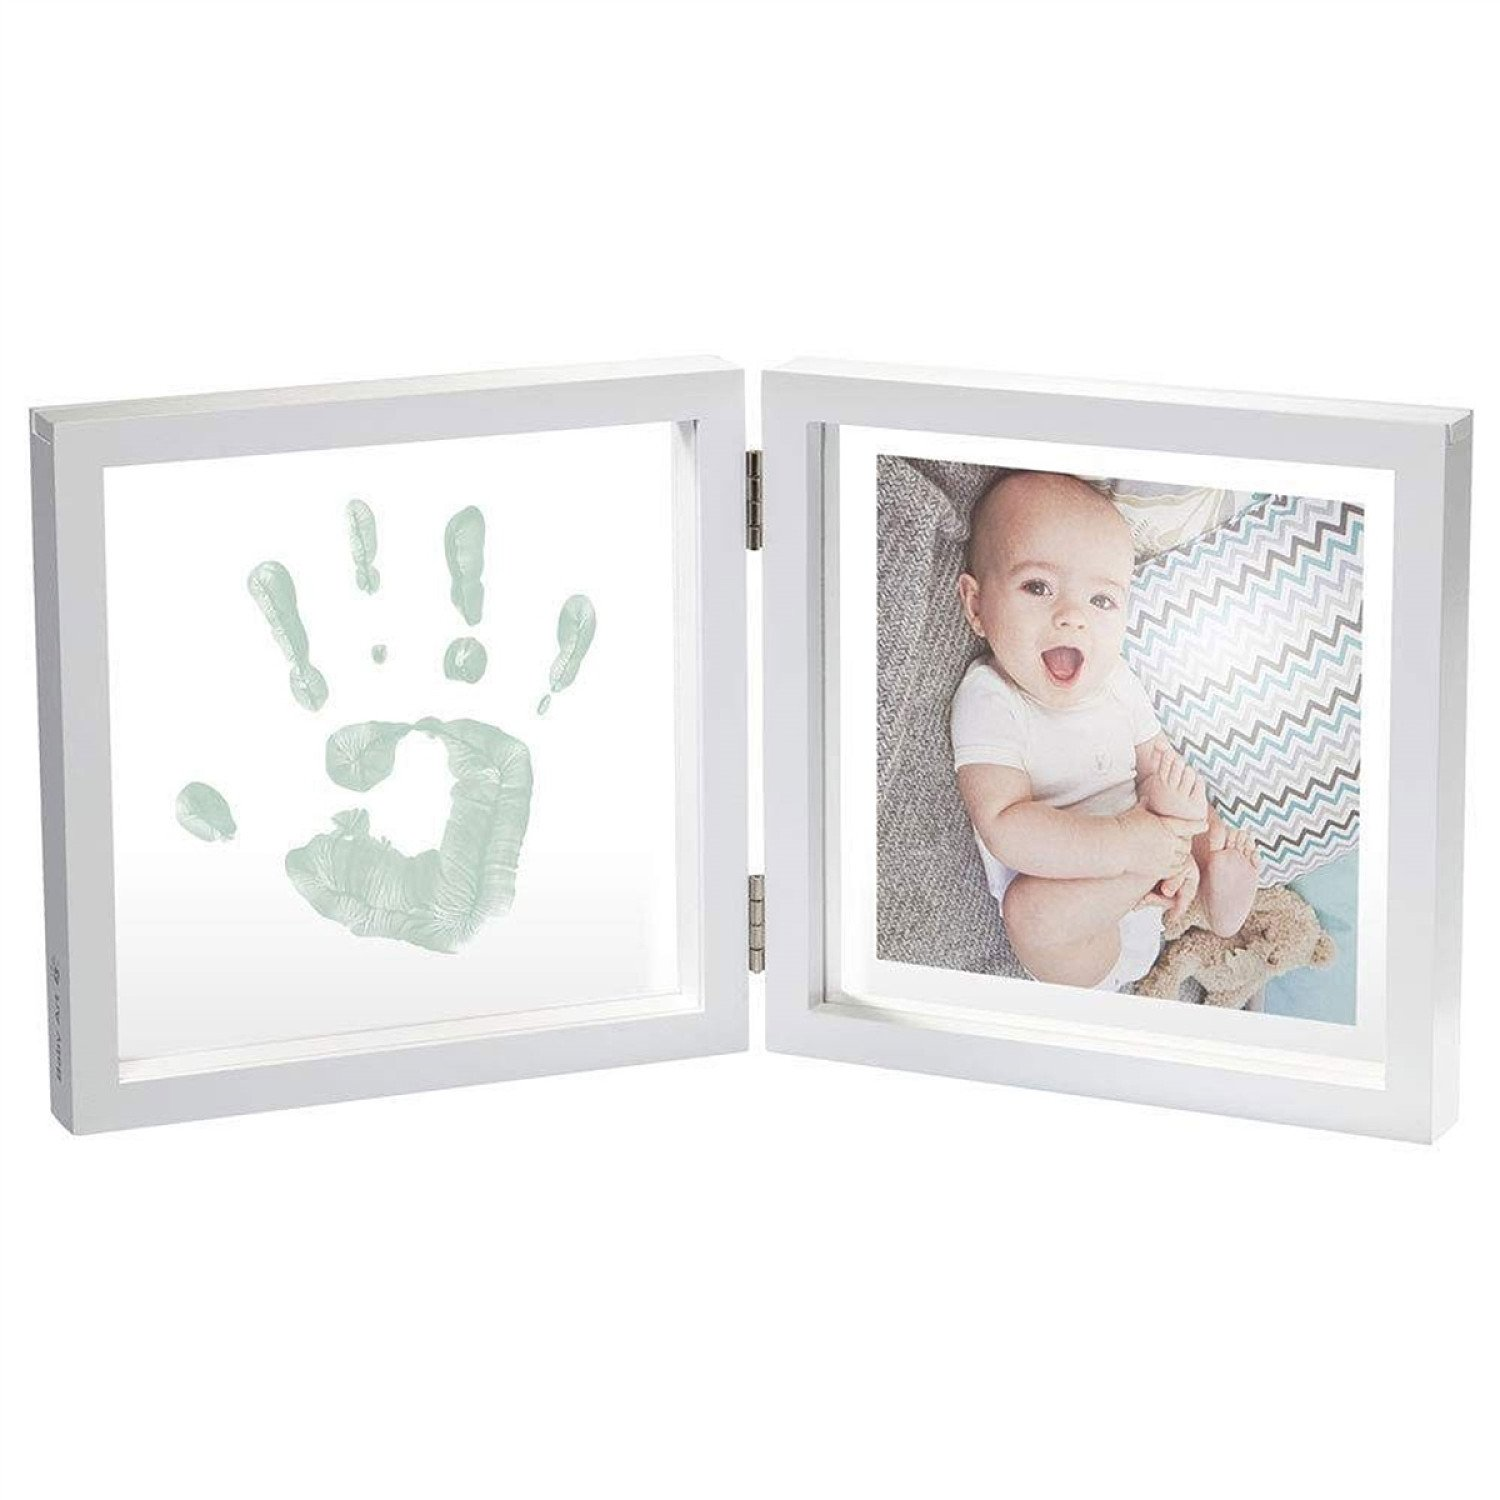 Up to 30% Off Baby Gifts & Gift Sets